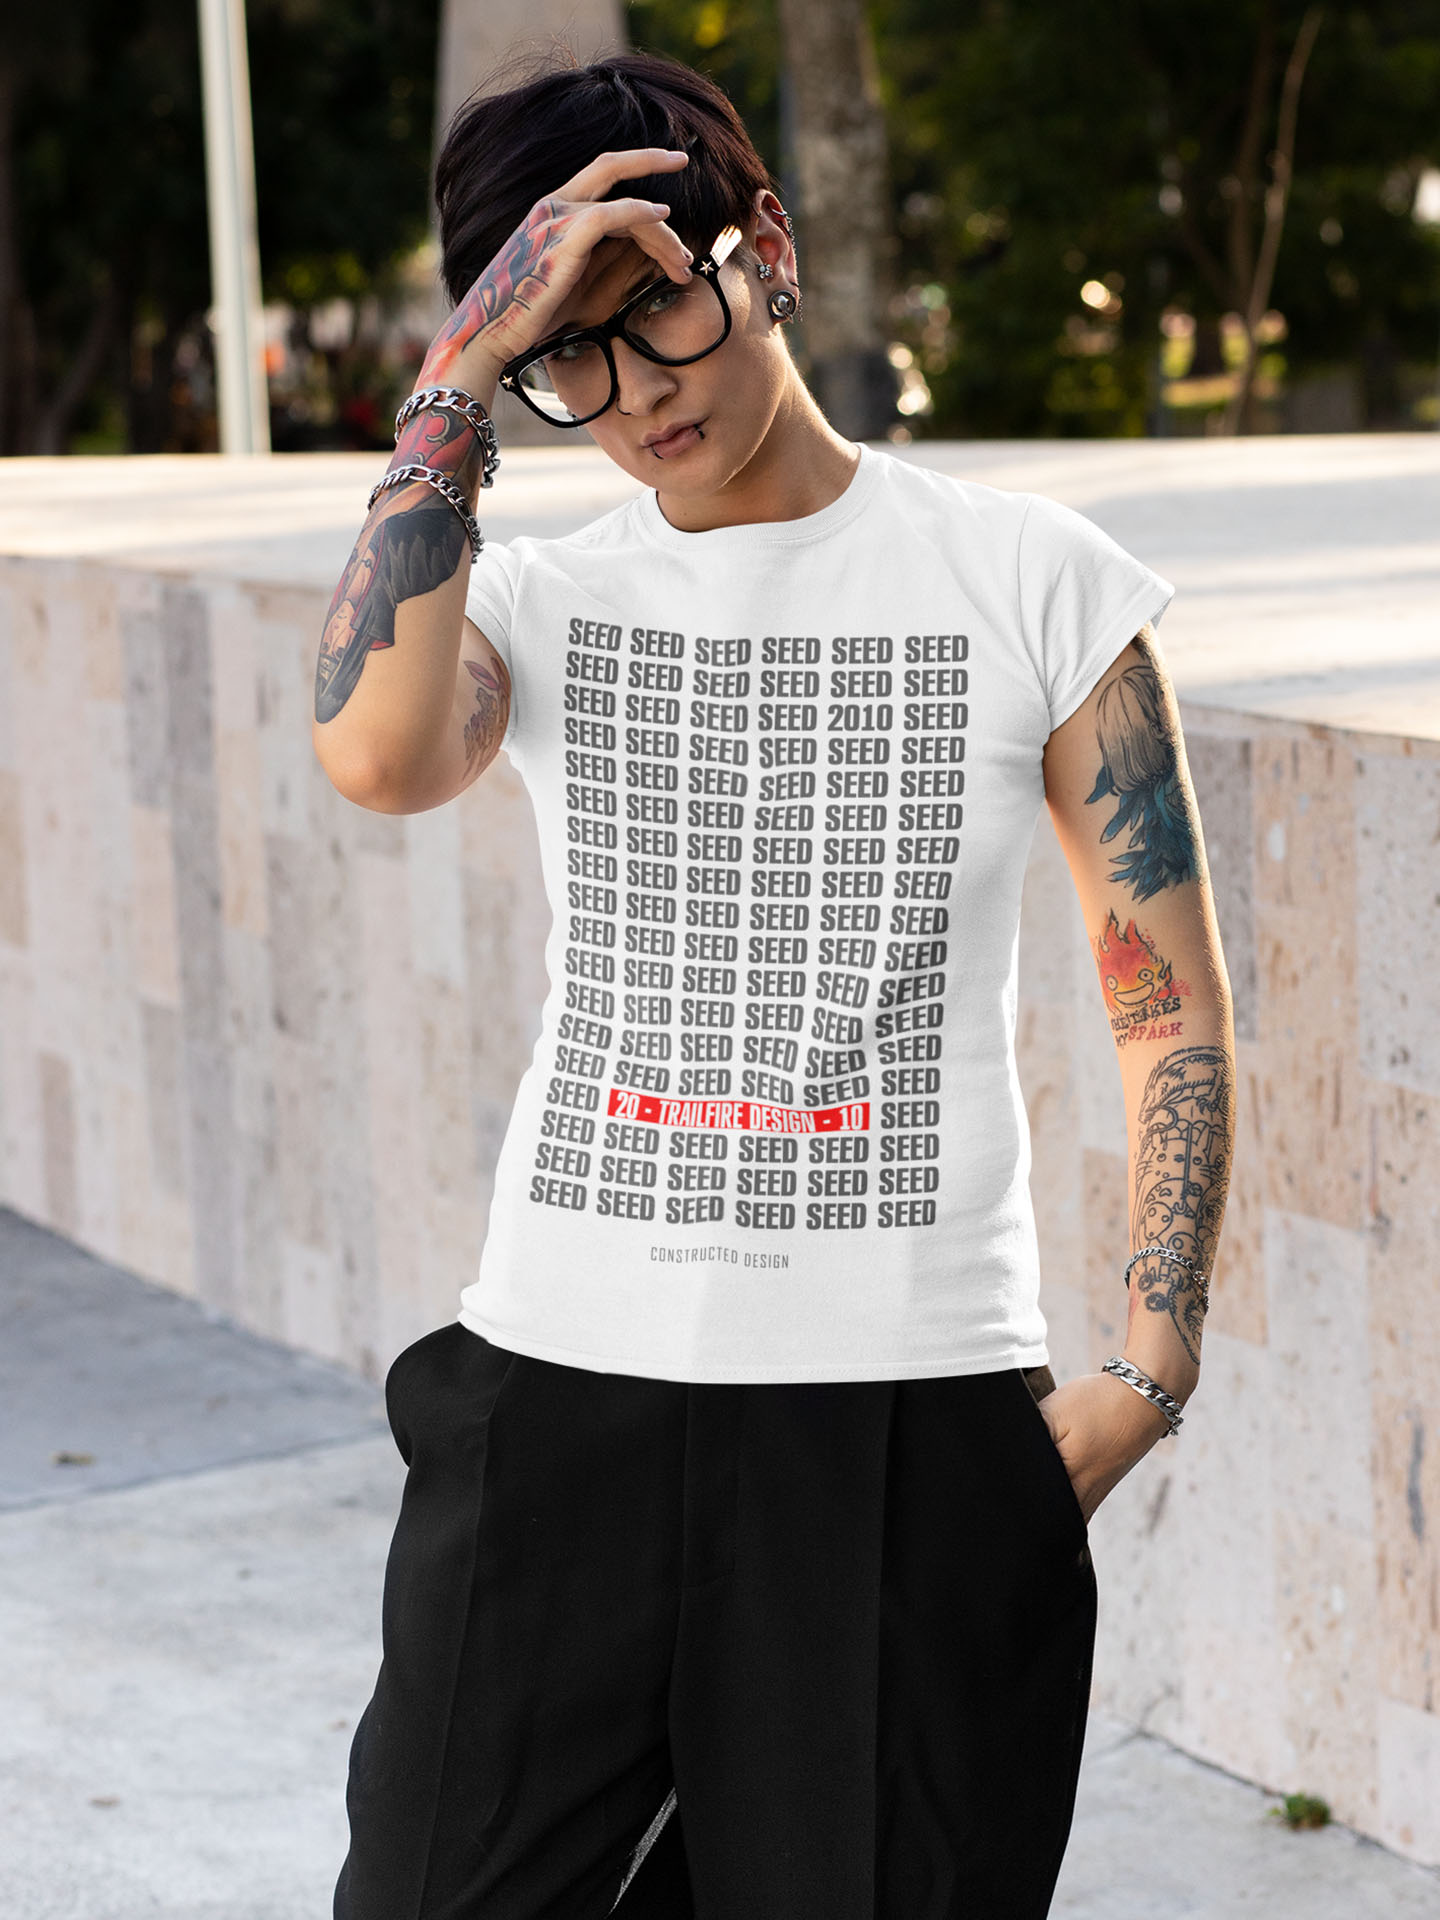 Spredshirt-Prints-Trailfire_0057_t-shirt-mockup-of-a-tattooed-woman-with-an-androgynous-style-32932